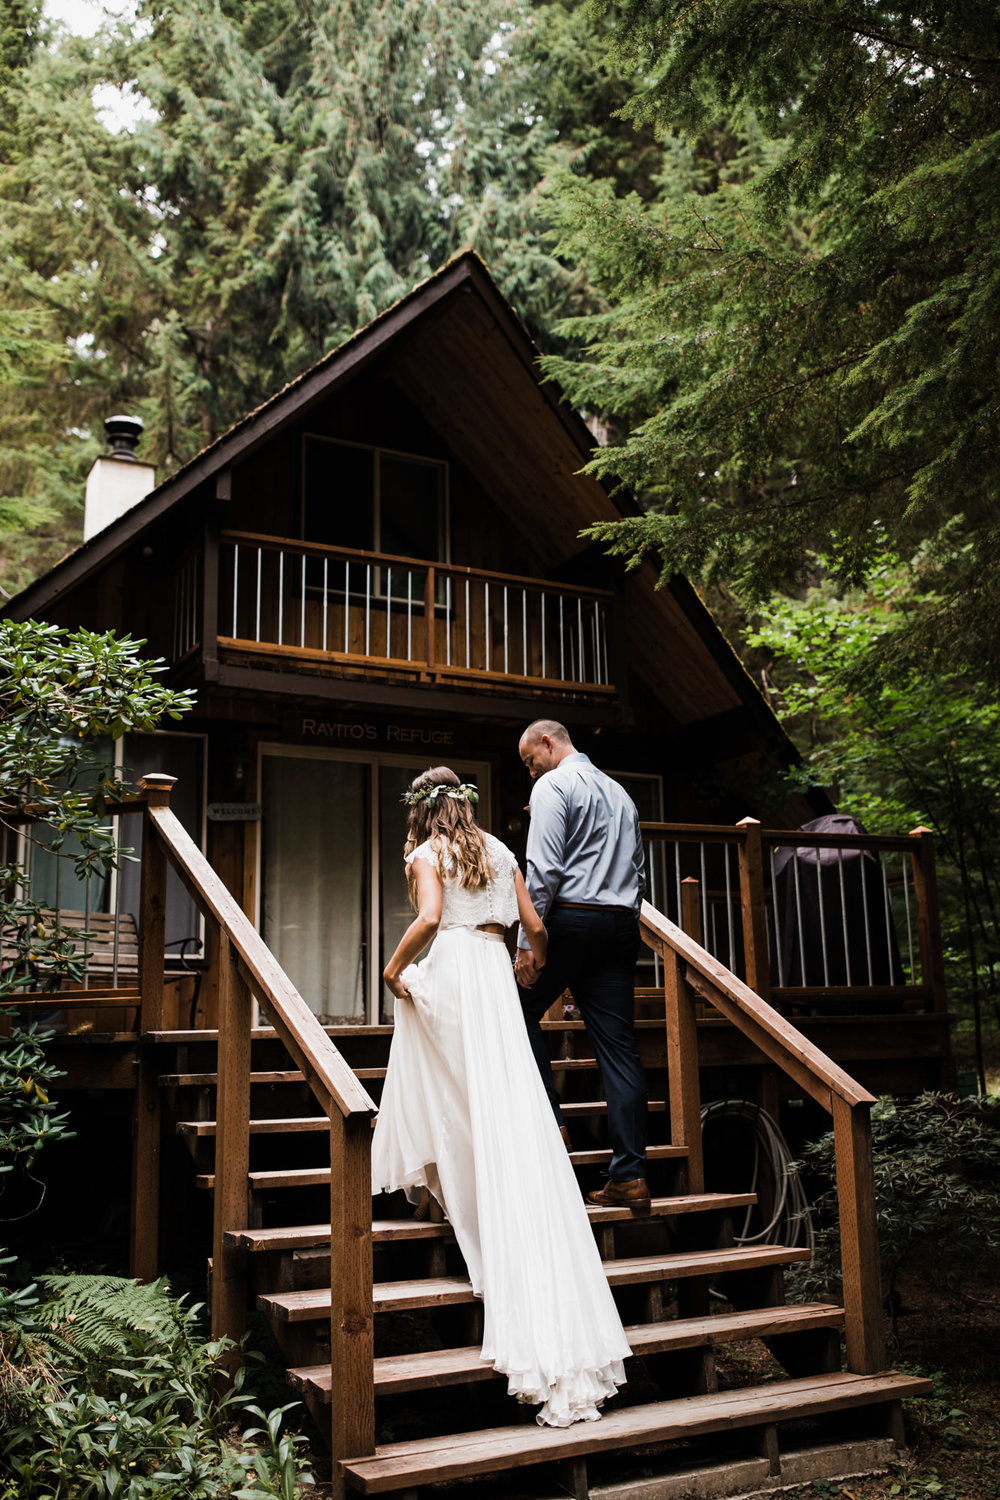 cabin in the woods elopement near mount rainier national park | destination adventure wedding photographers | the hearnes adventure photography | www.thehearnes.com